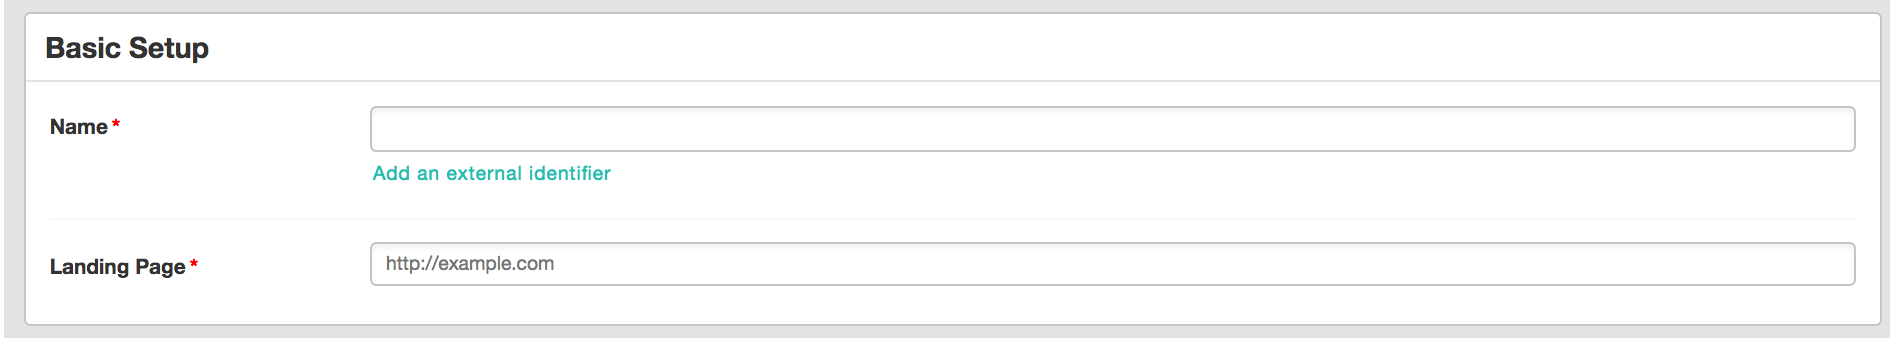 Screen_Shot_2017-06-21_at_4.43.05_PM.png